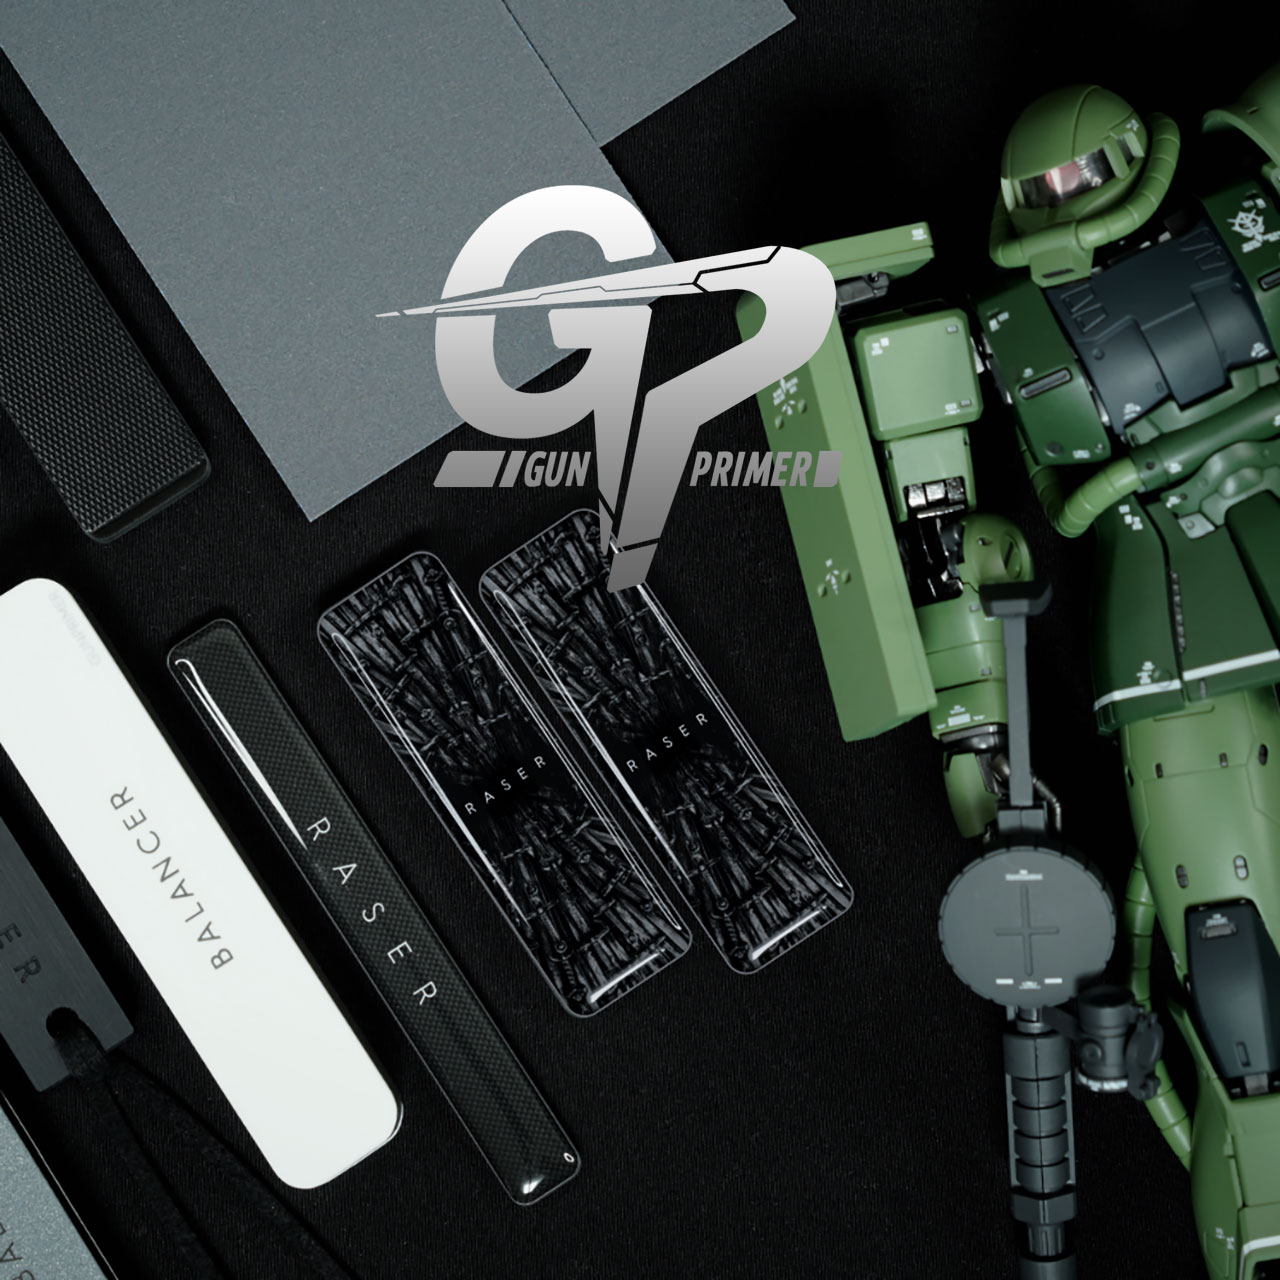 GUNPRIMER tools and accessories are available now!